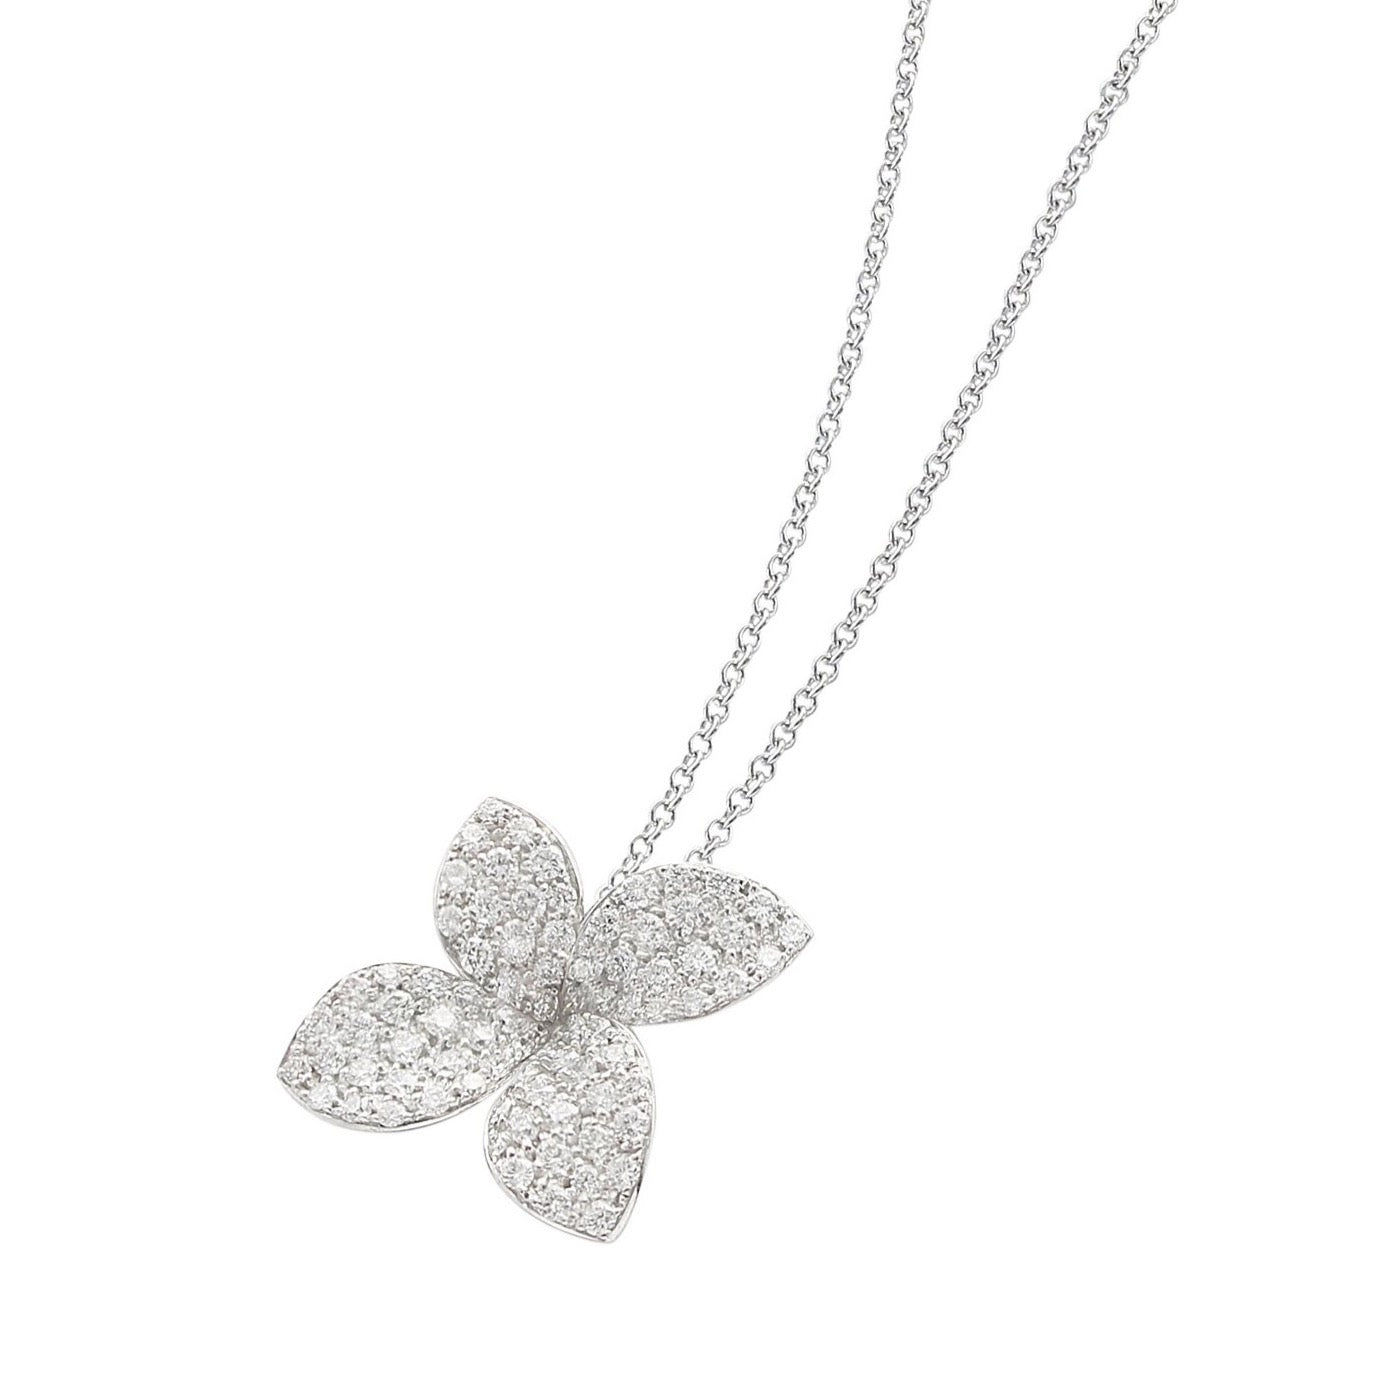 Pasquale Bruni Giardini Segreti Petit Pendant, 18k White Gold with Diamonds